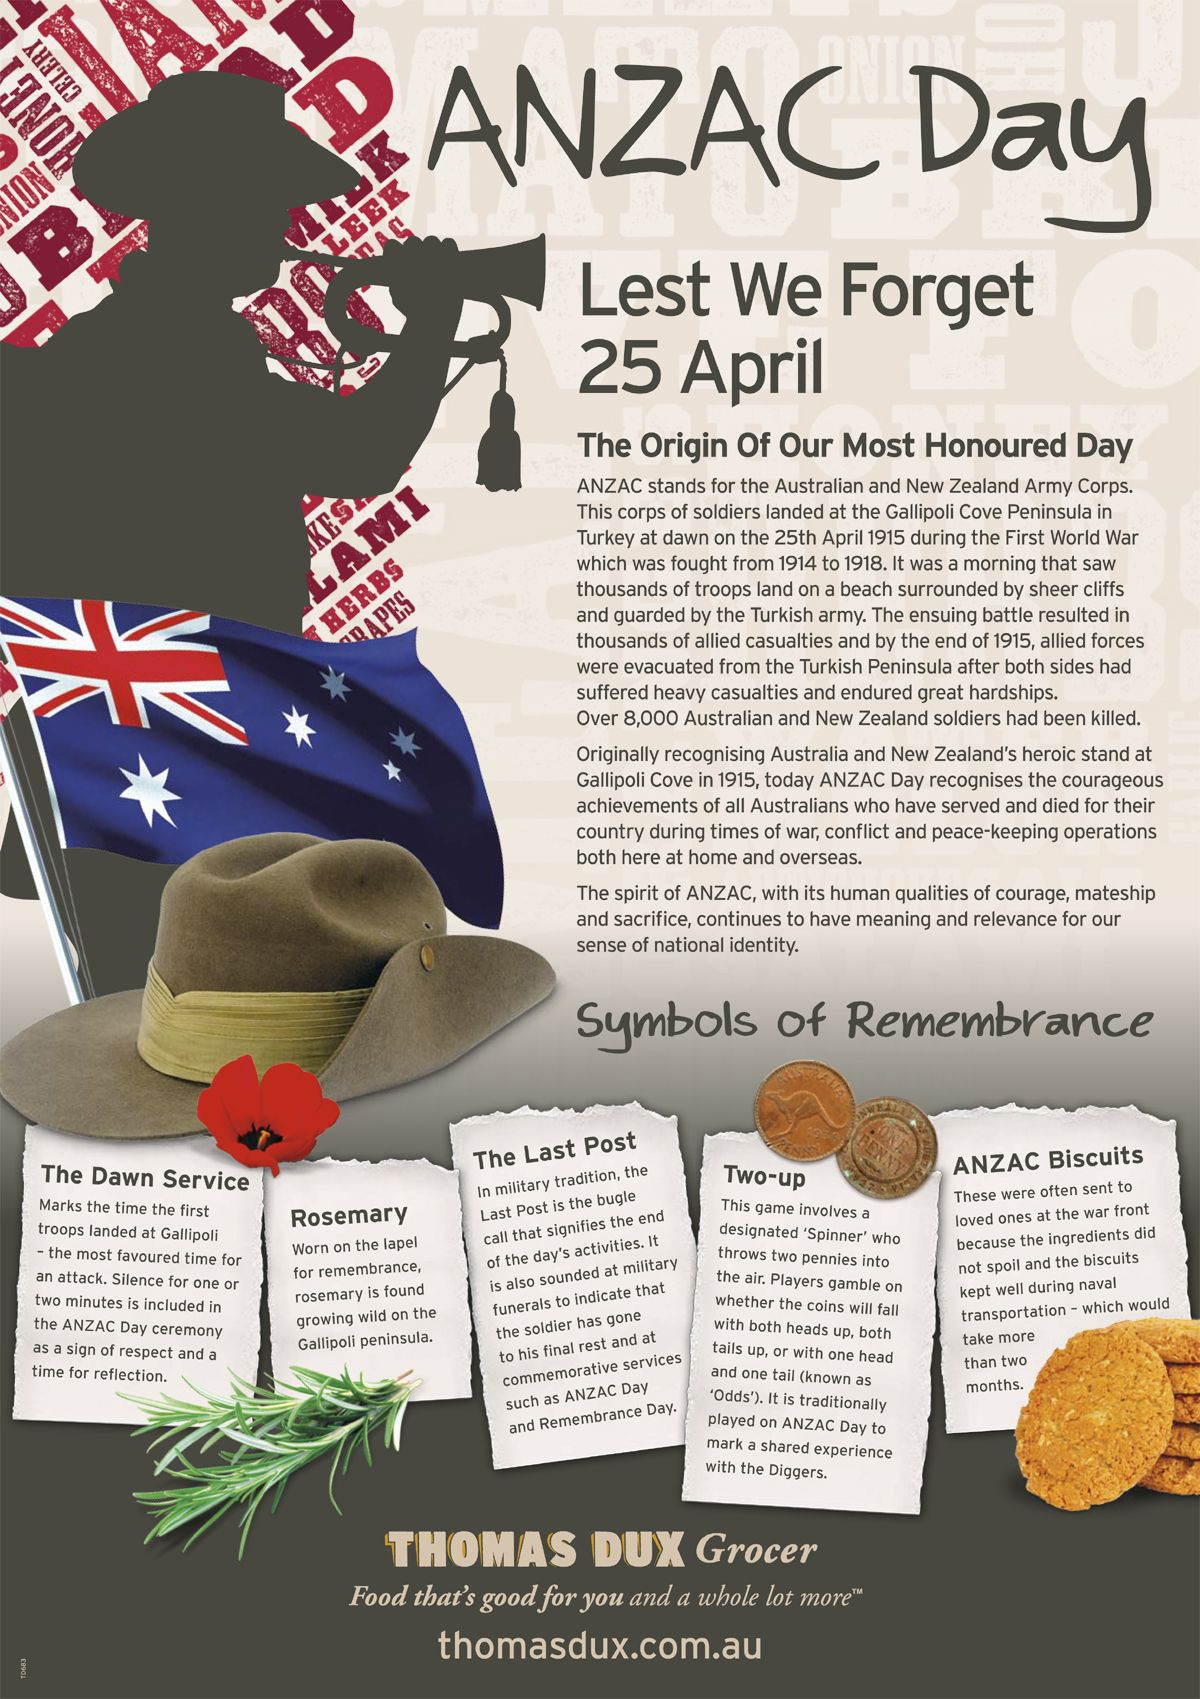 Anzac Day Is A Special Day Of Remembrance In Australia And